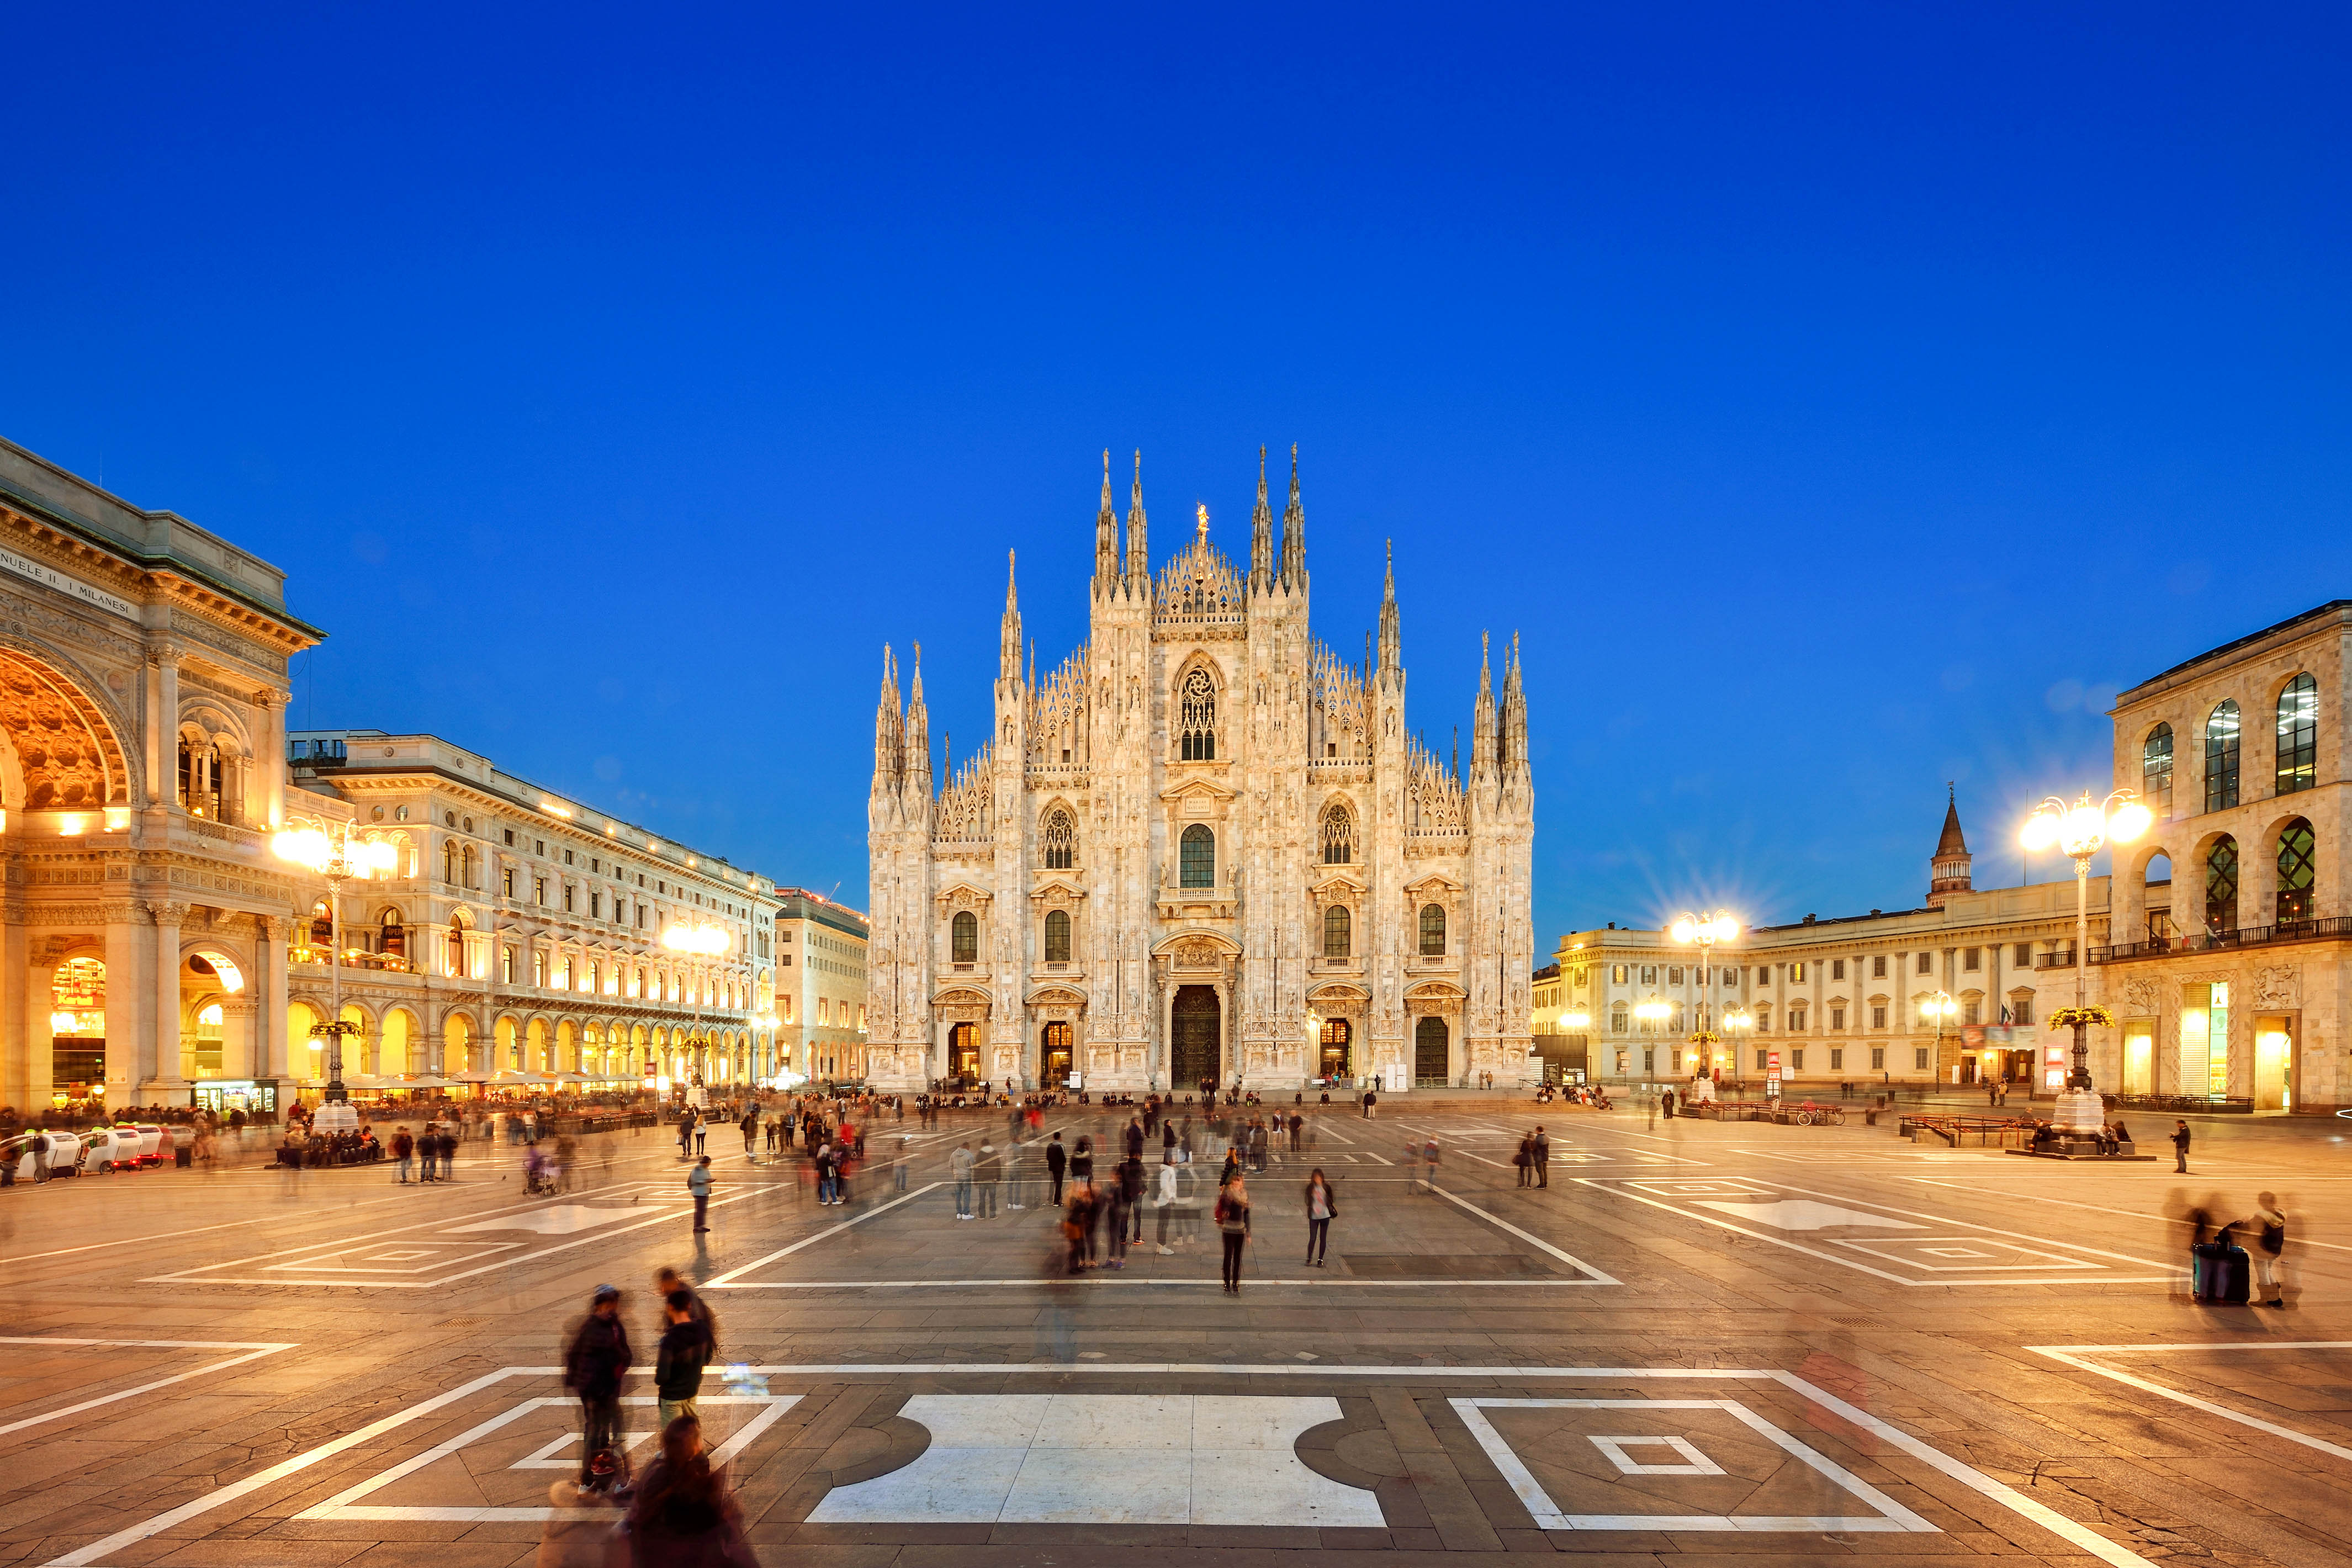 Panoramic Milan Piazza Del Duomo and Vittorio Emanuele Gallery II in blue sky at sunset, Milan, Italy.